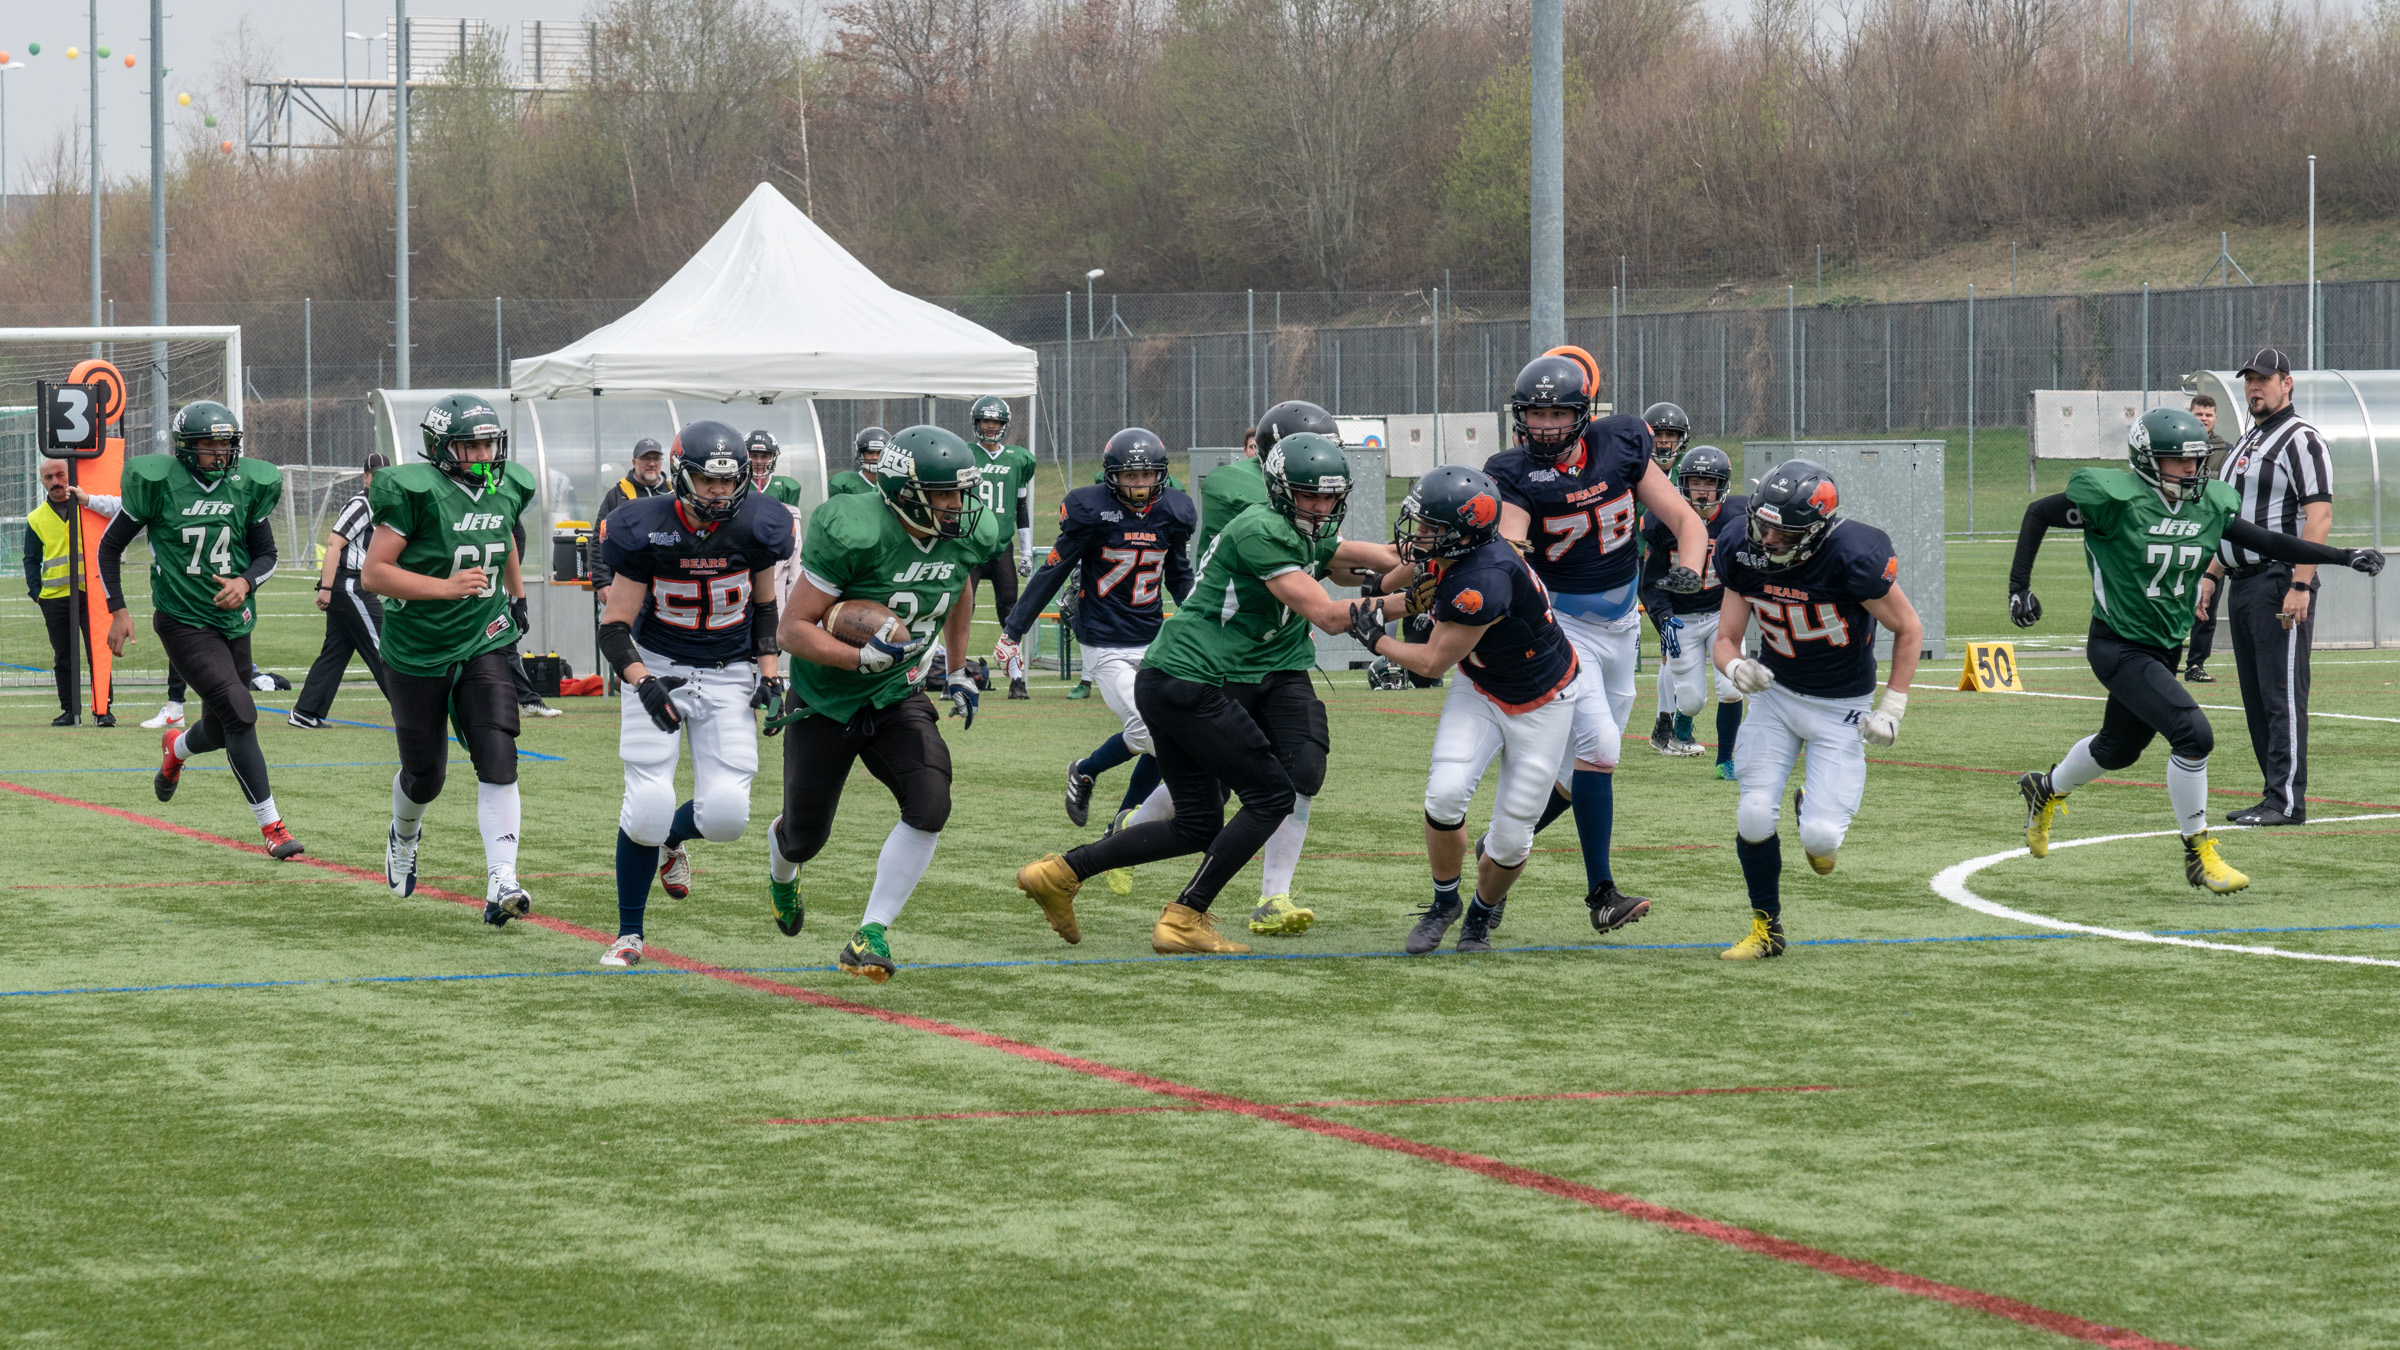 St. Gallen Bears U19 Vs Bienna Jets U19